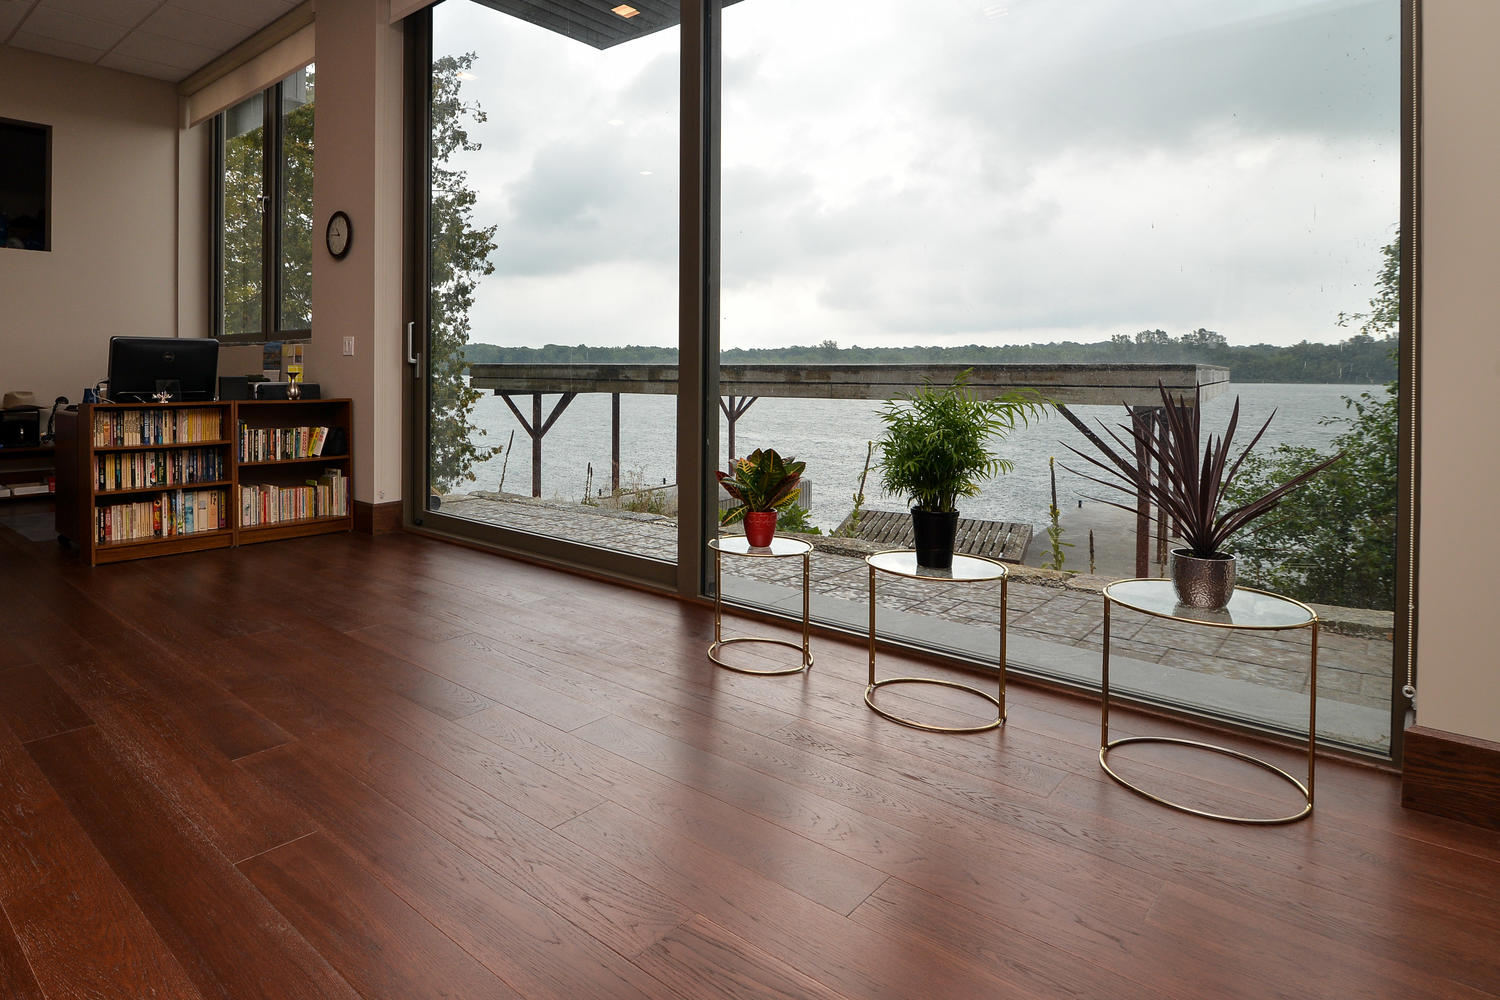 Hickory Wood Flooring with large windows and a beautiful view